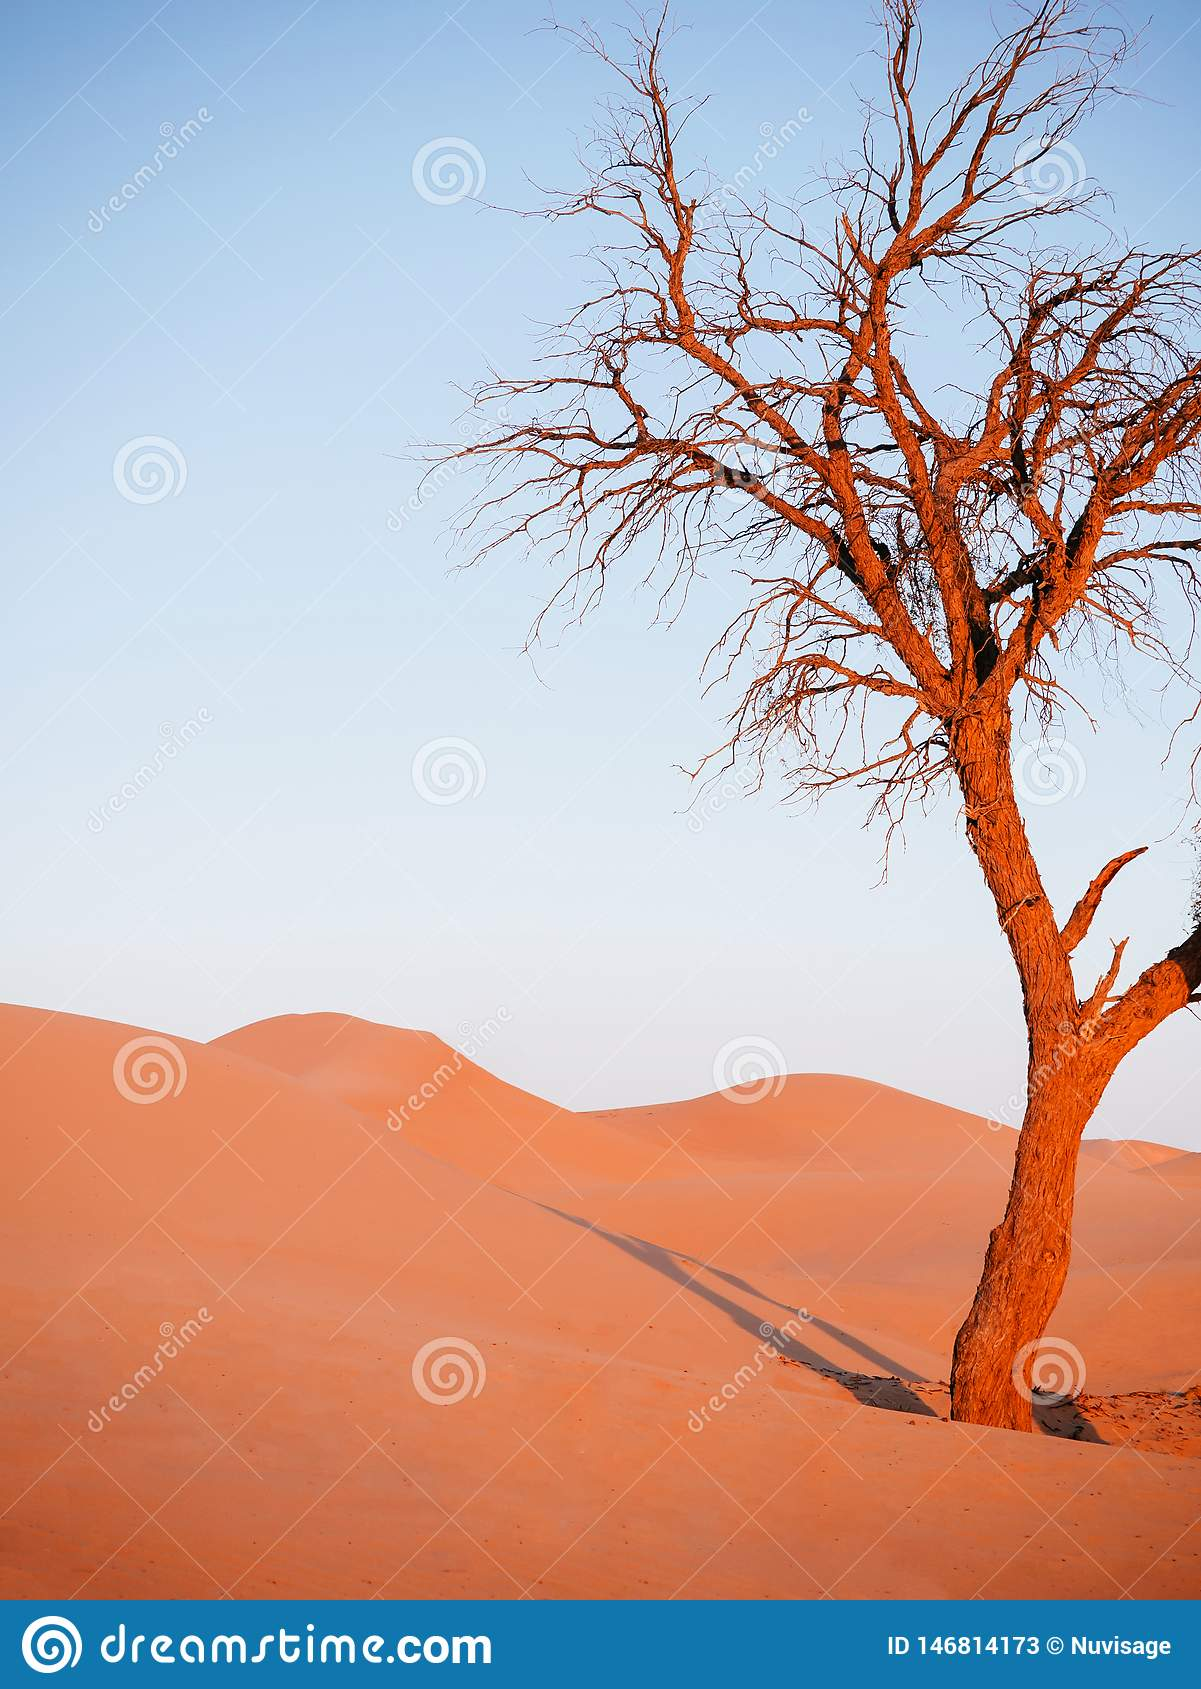 Beautiful Dead Tree In Desert With Sunset Light And Clear Sky  Dubai